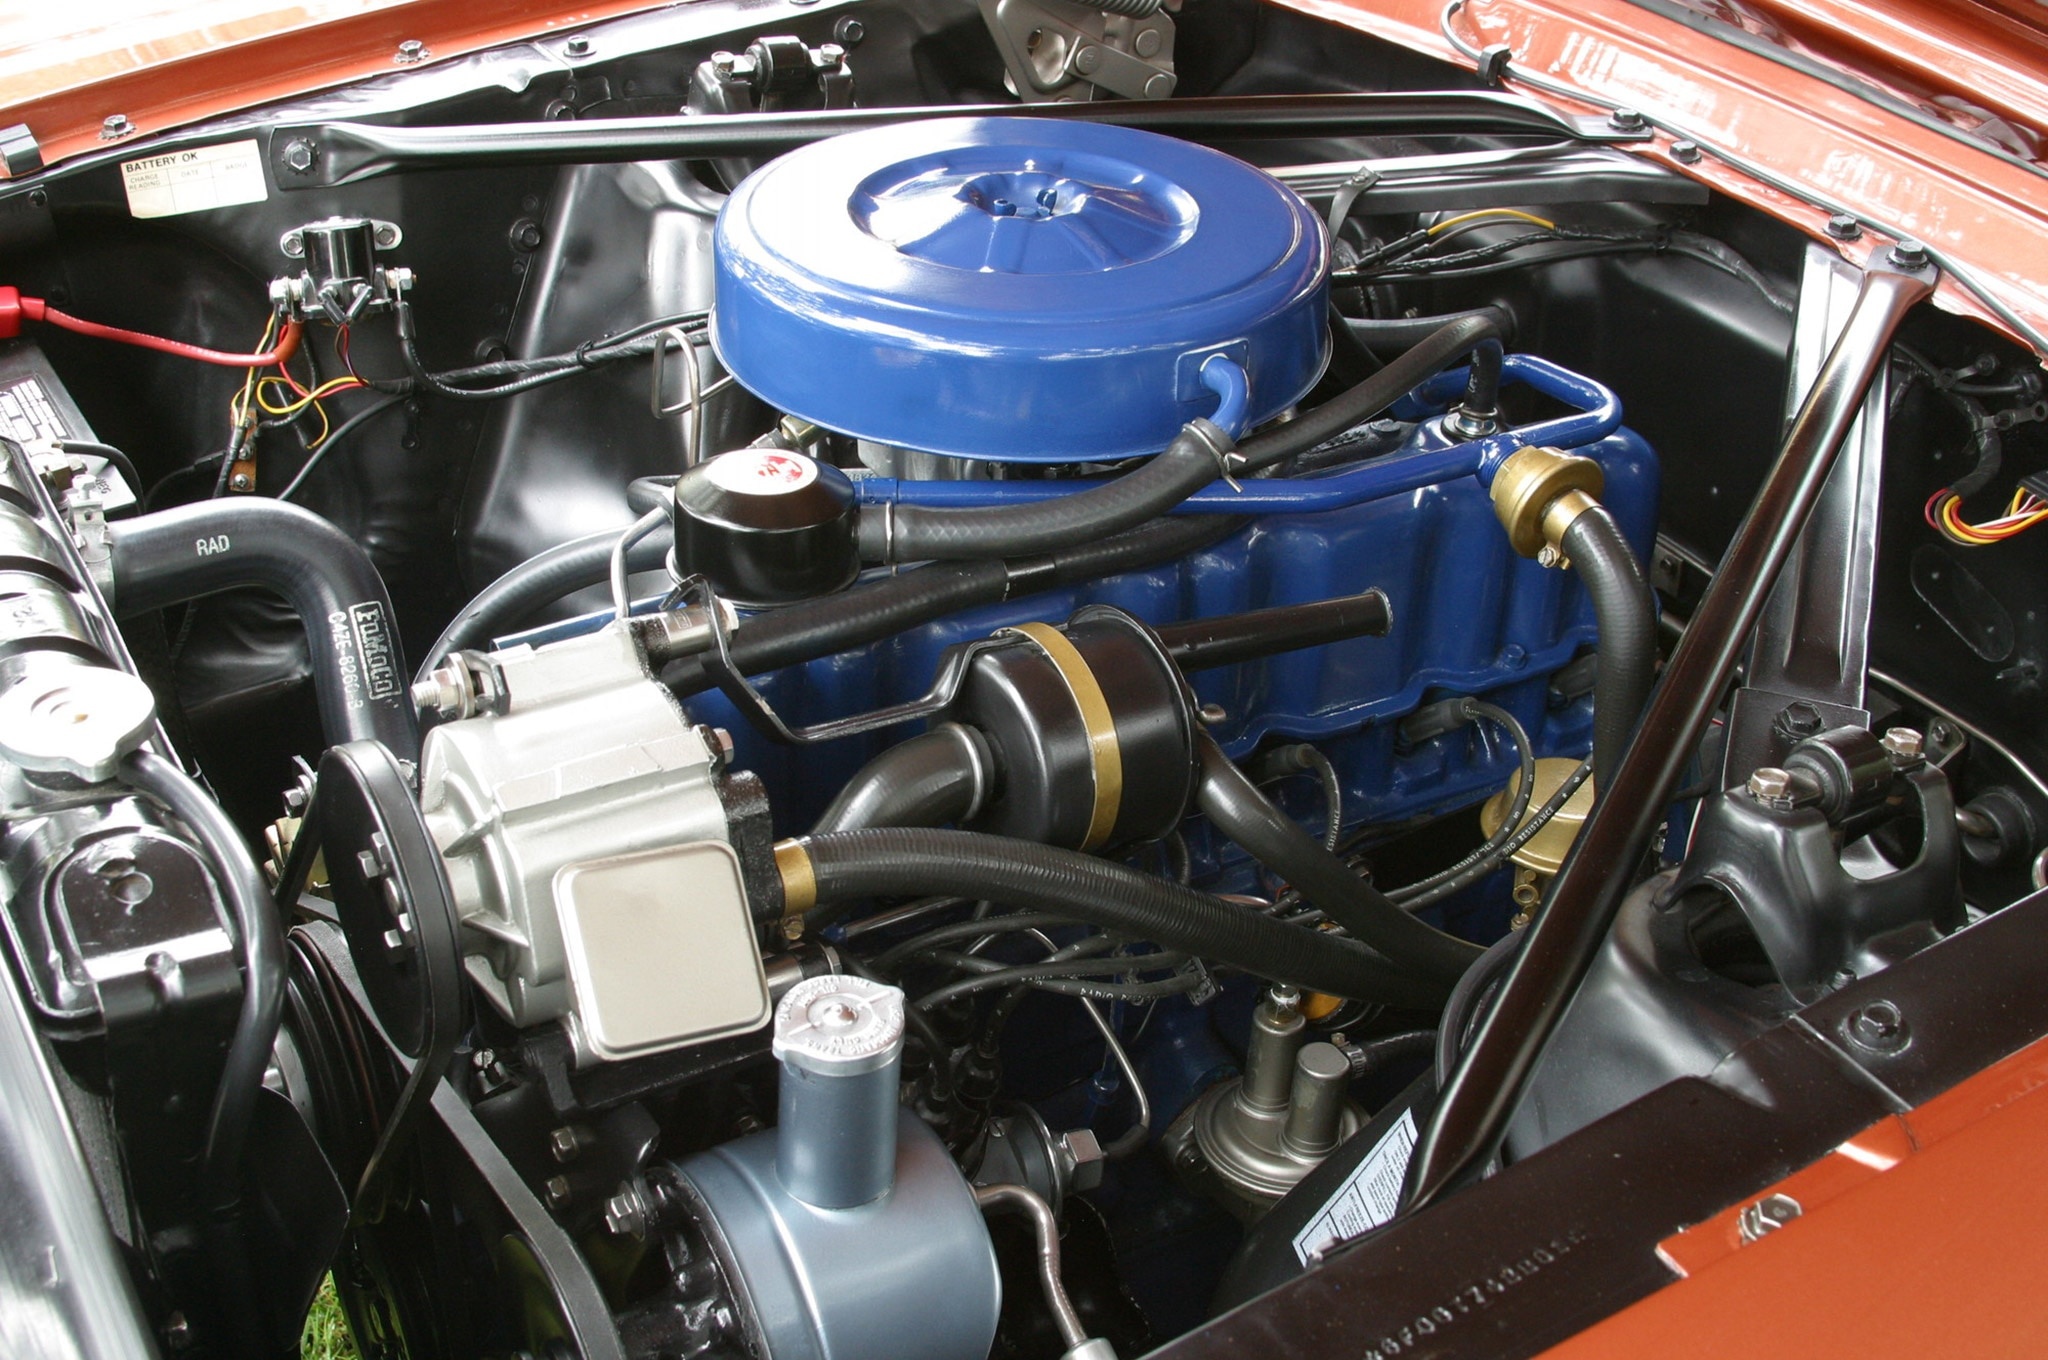 1966 Ford Mustang Six Cylinder Belair Engine Side